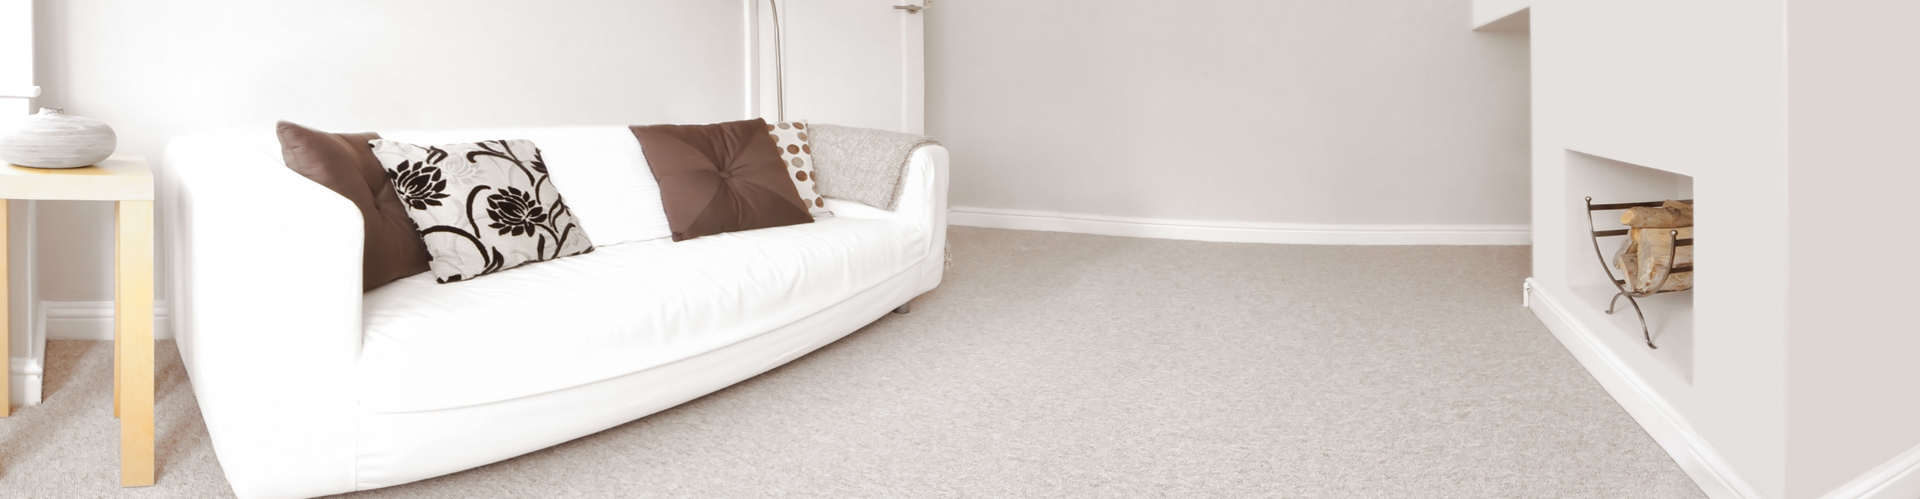 Livingroom Carpet | Shane's Built-In Vacuums Ltd.